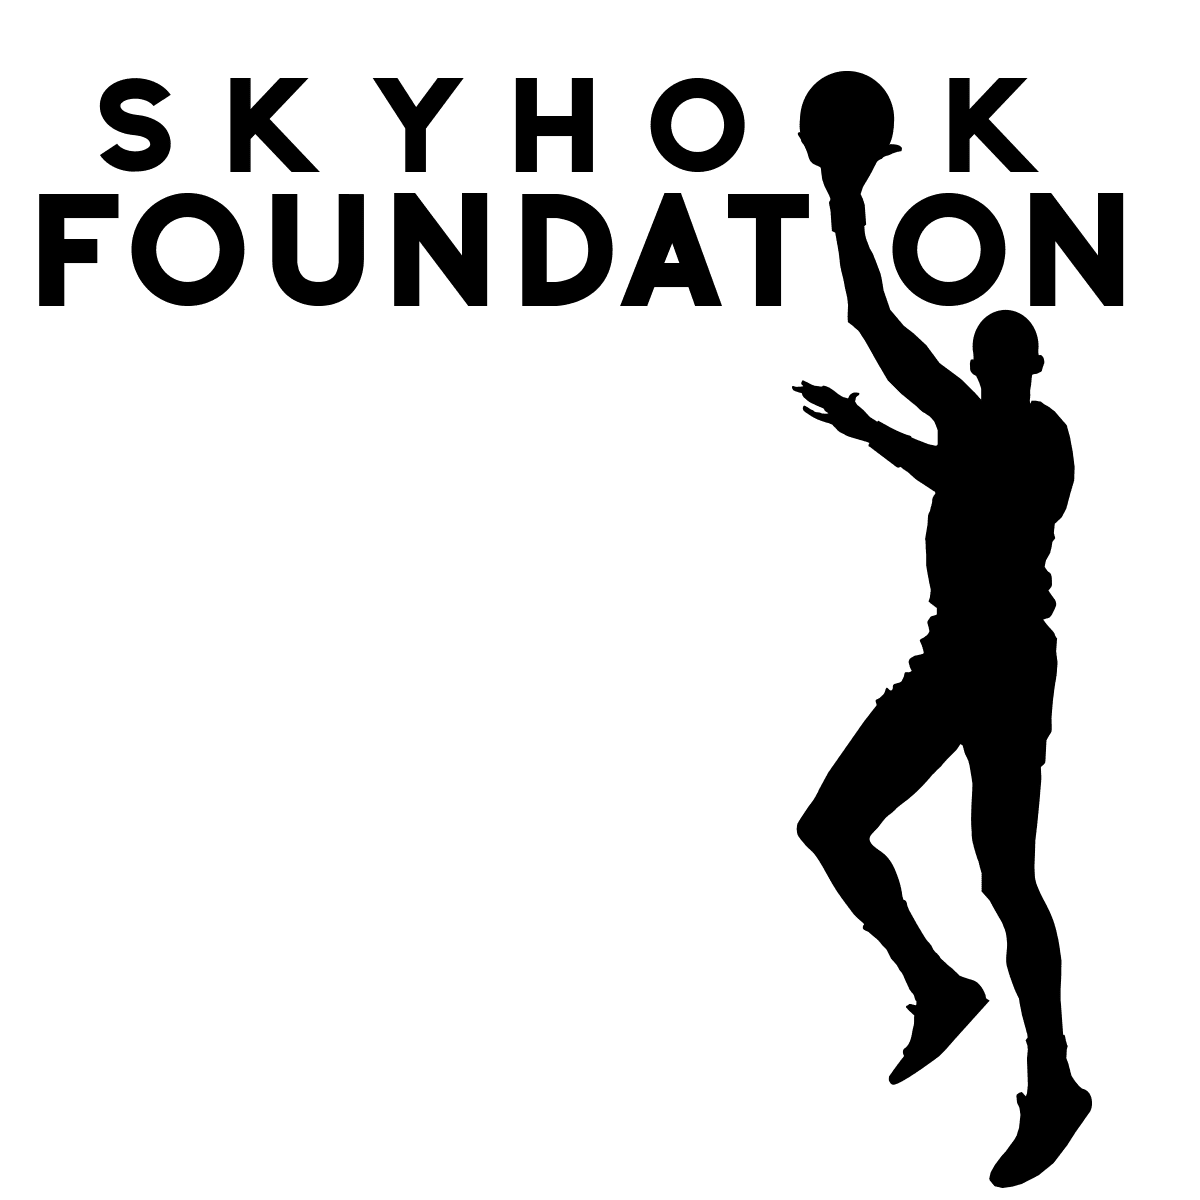 Skyhook Foundation